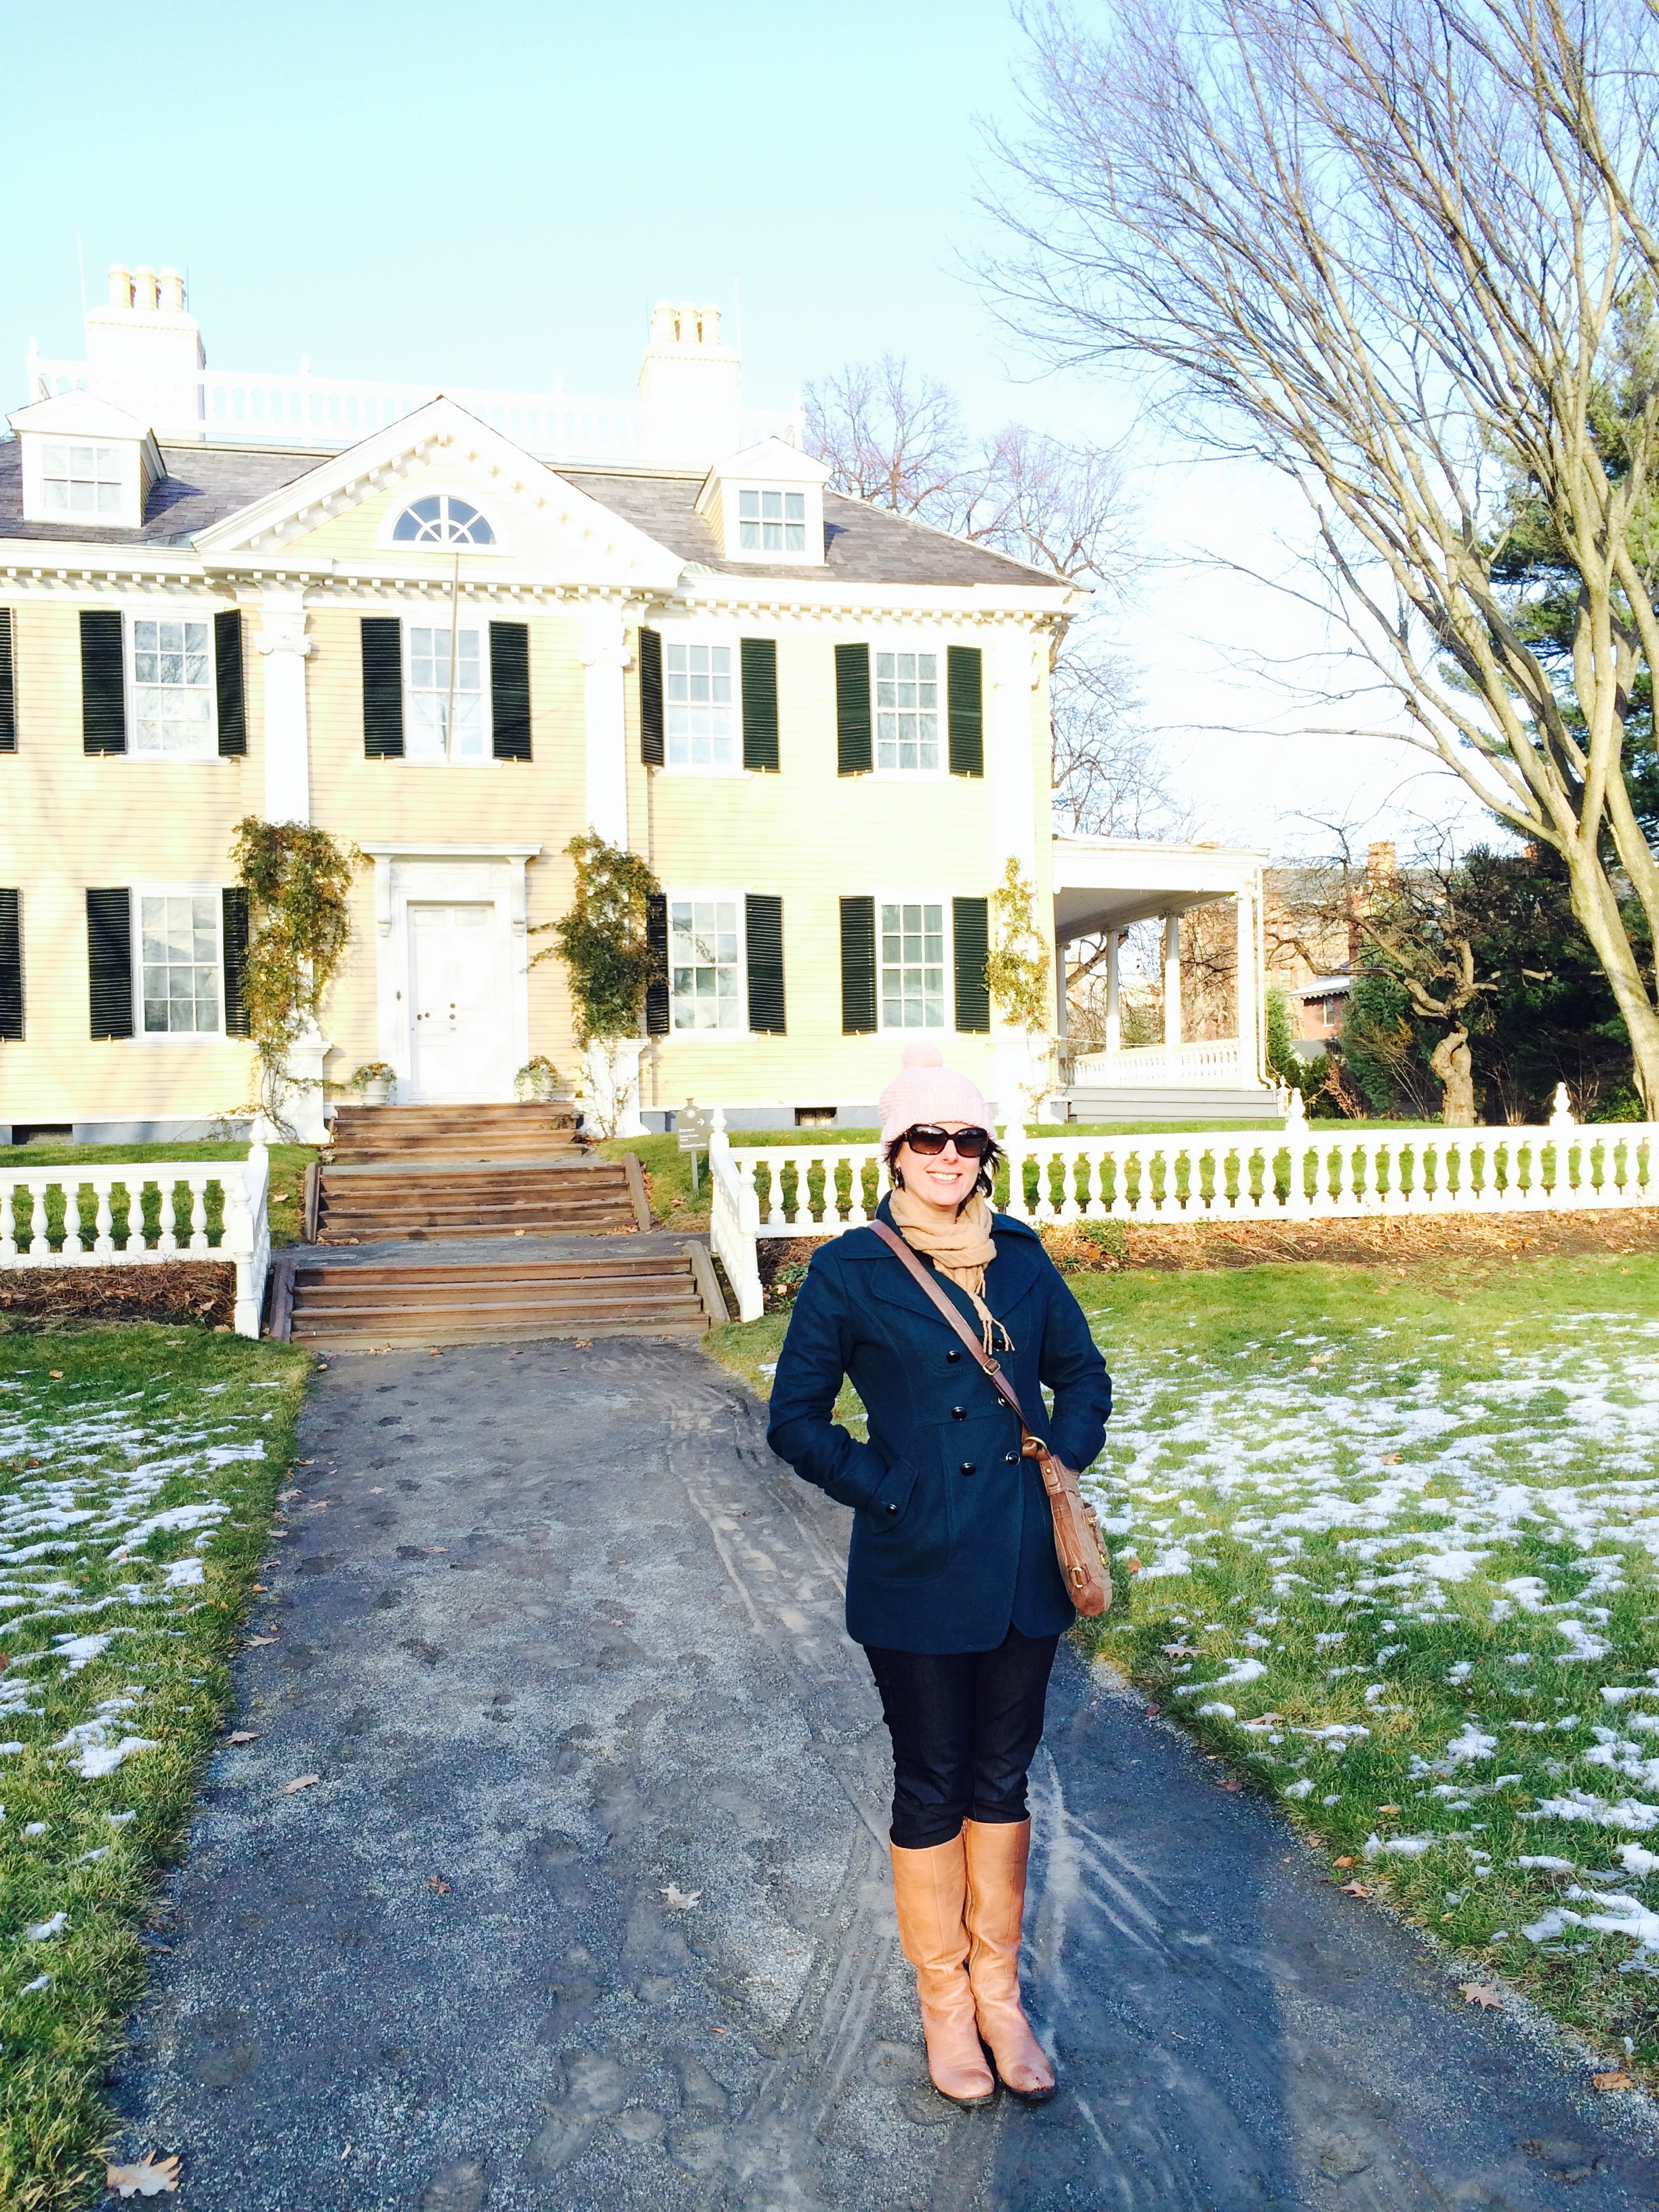 Longfellow House - Boston